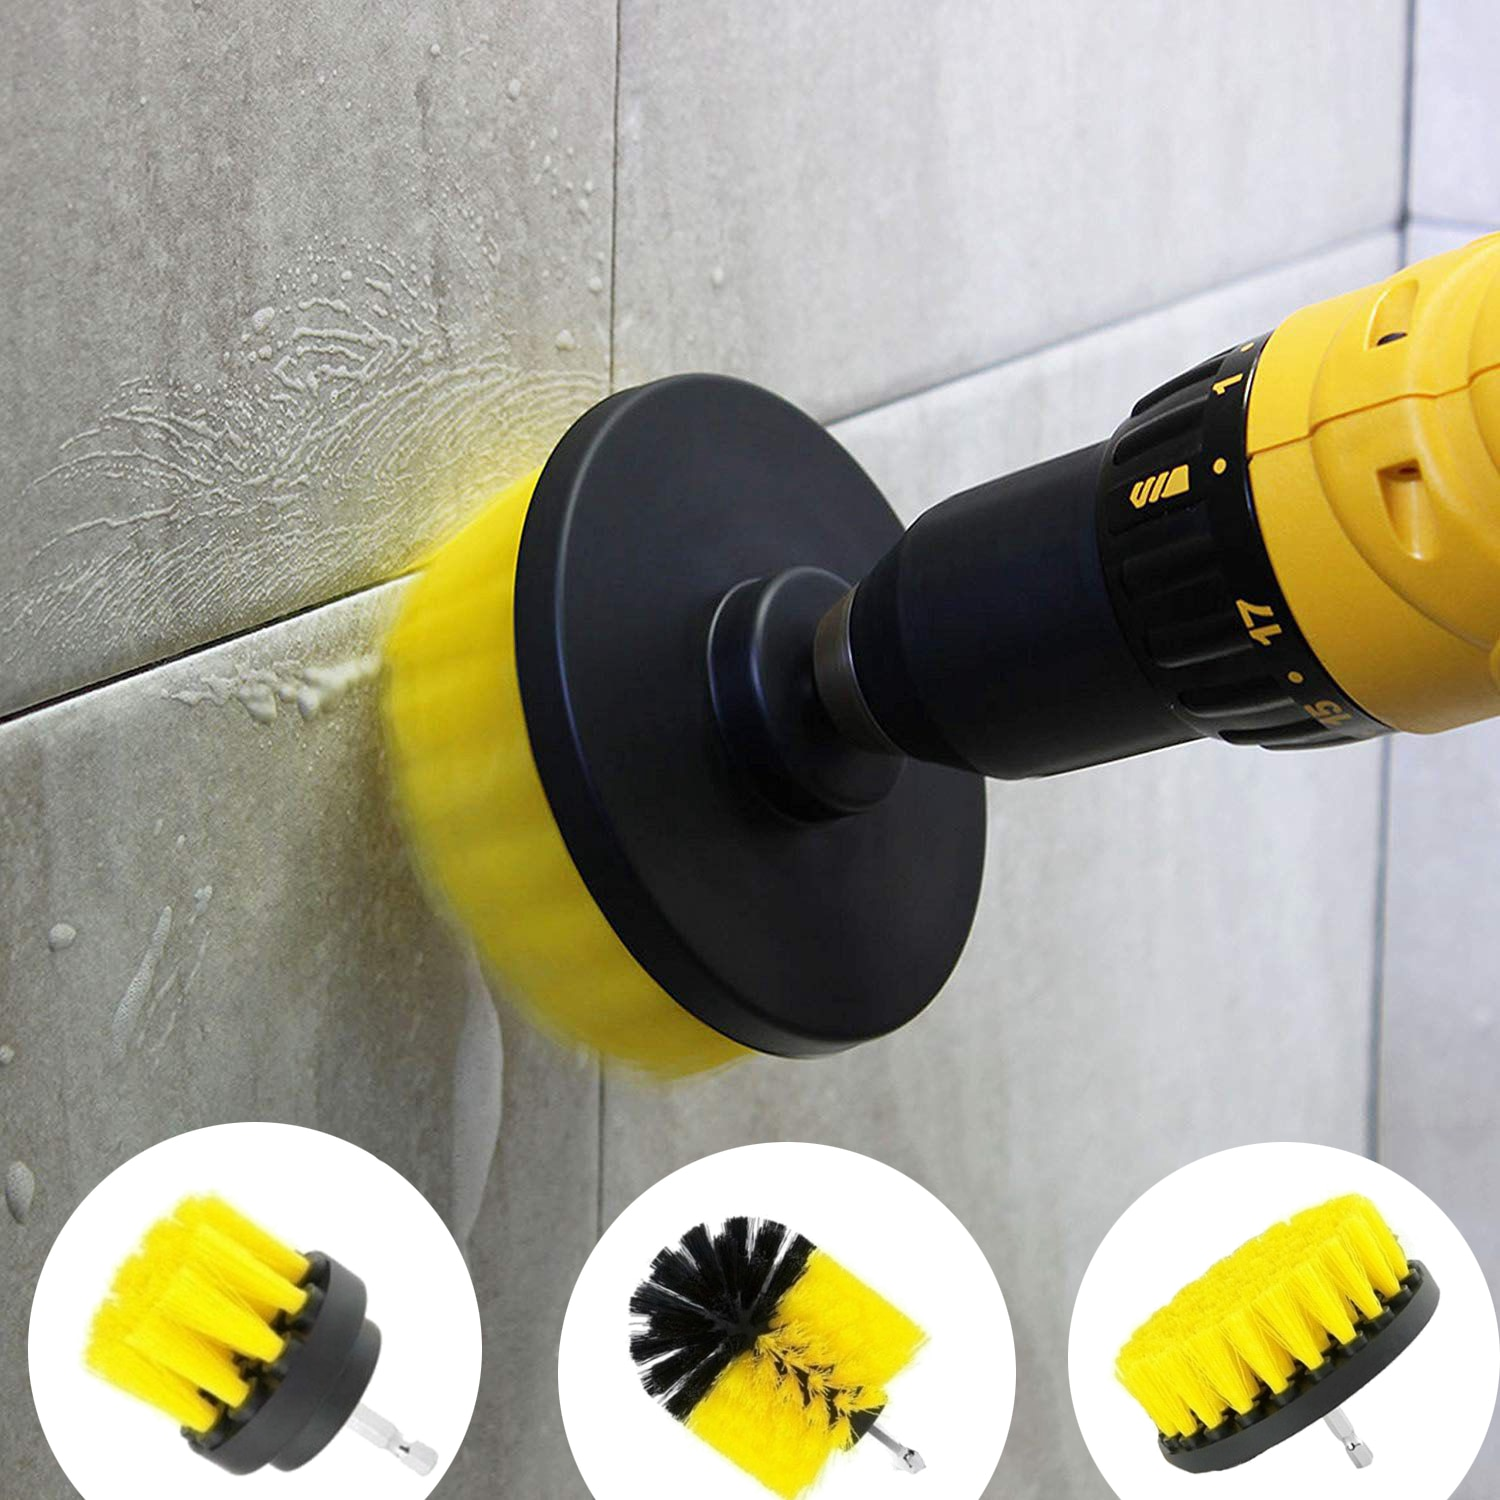 Drill Brush All Purpose Cleaner Scrubbing Brushes for Bathroom Surface Grout Tile Tub Shower Kitchen